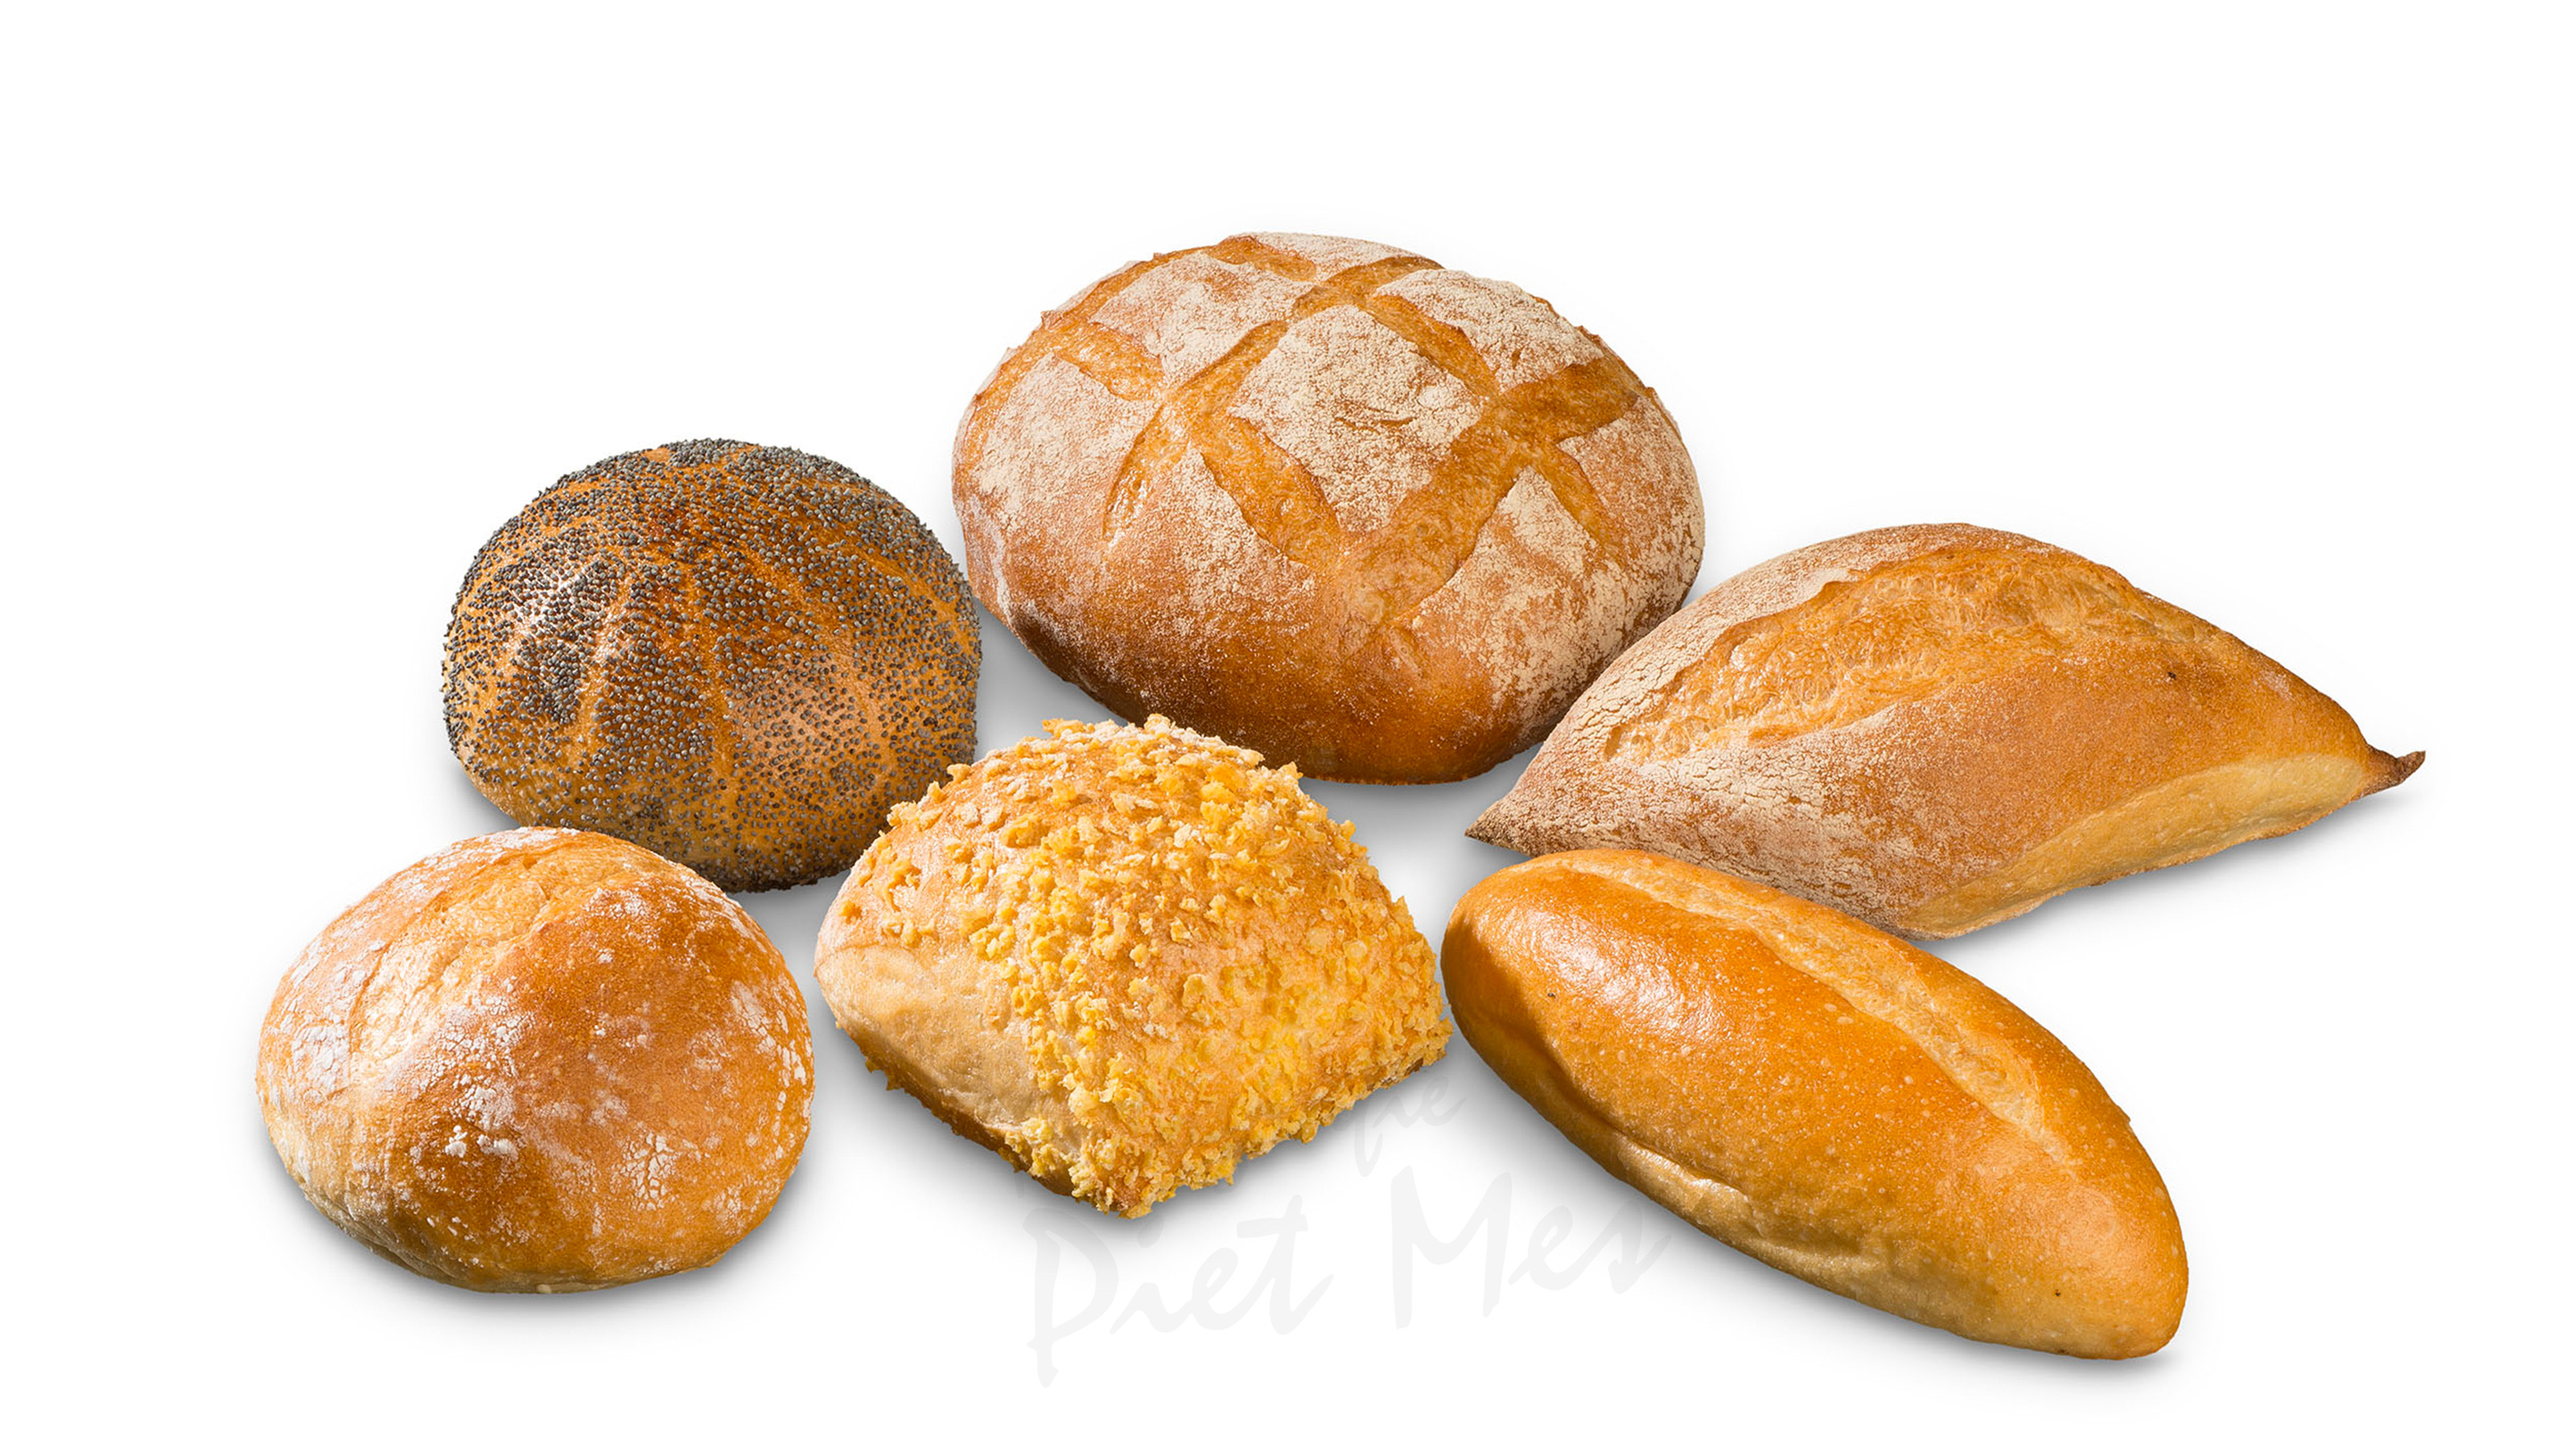 Productfotografie Brood